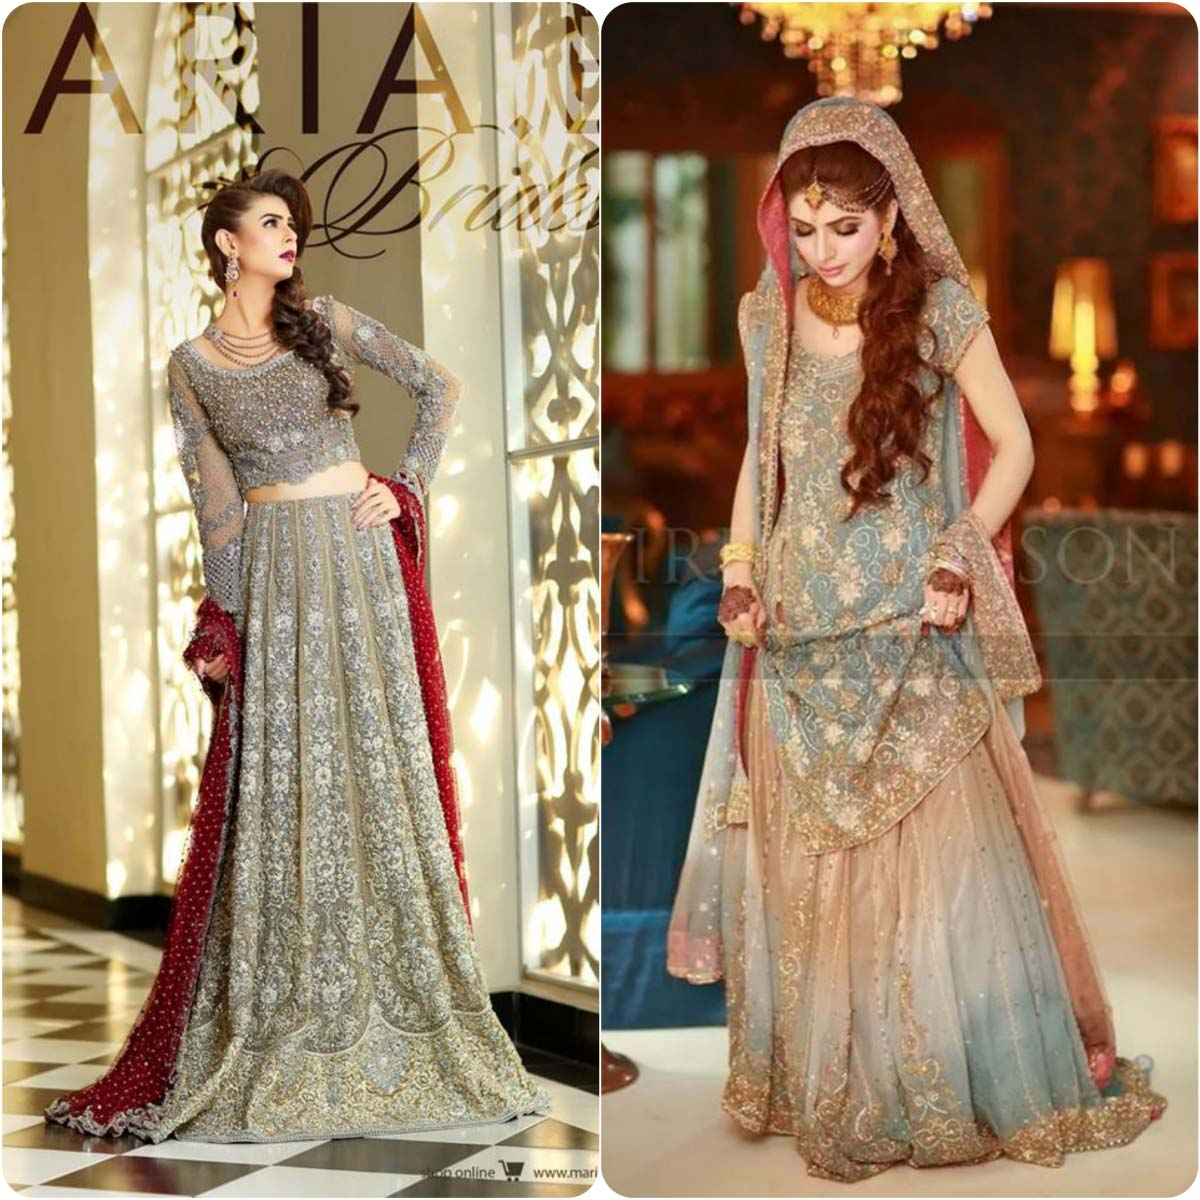 best-bridal-walima-dresses-2017-2018-designs-colors-5